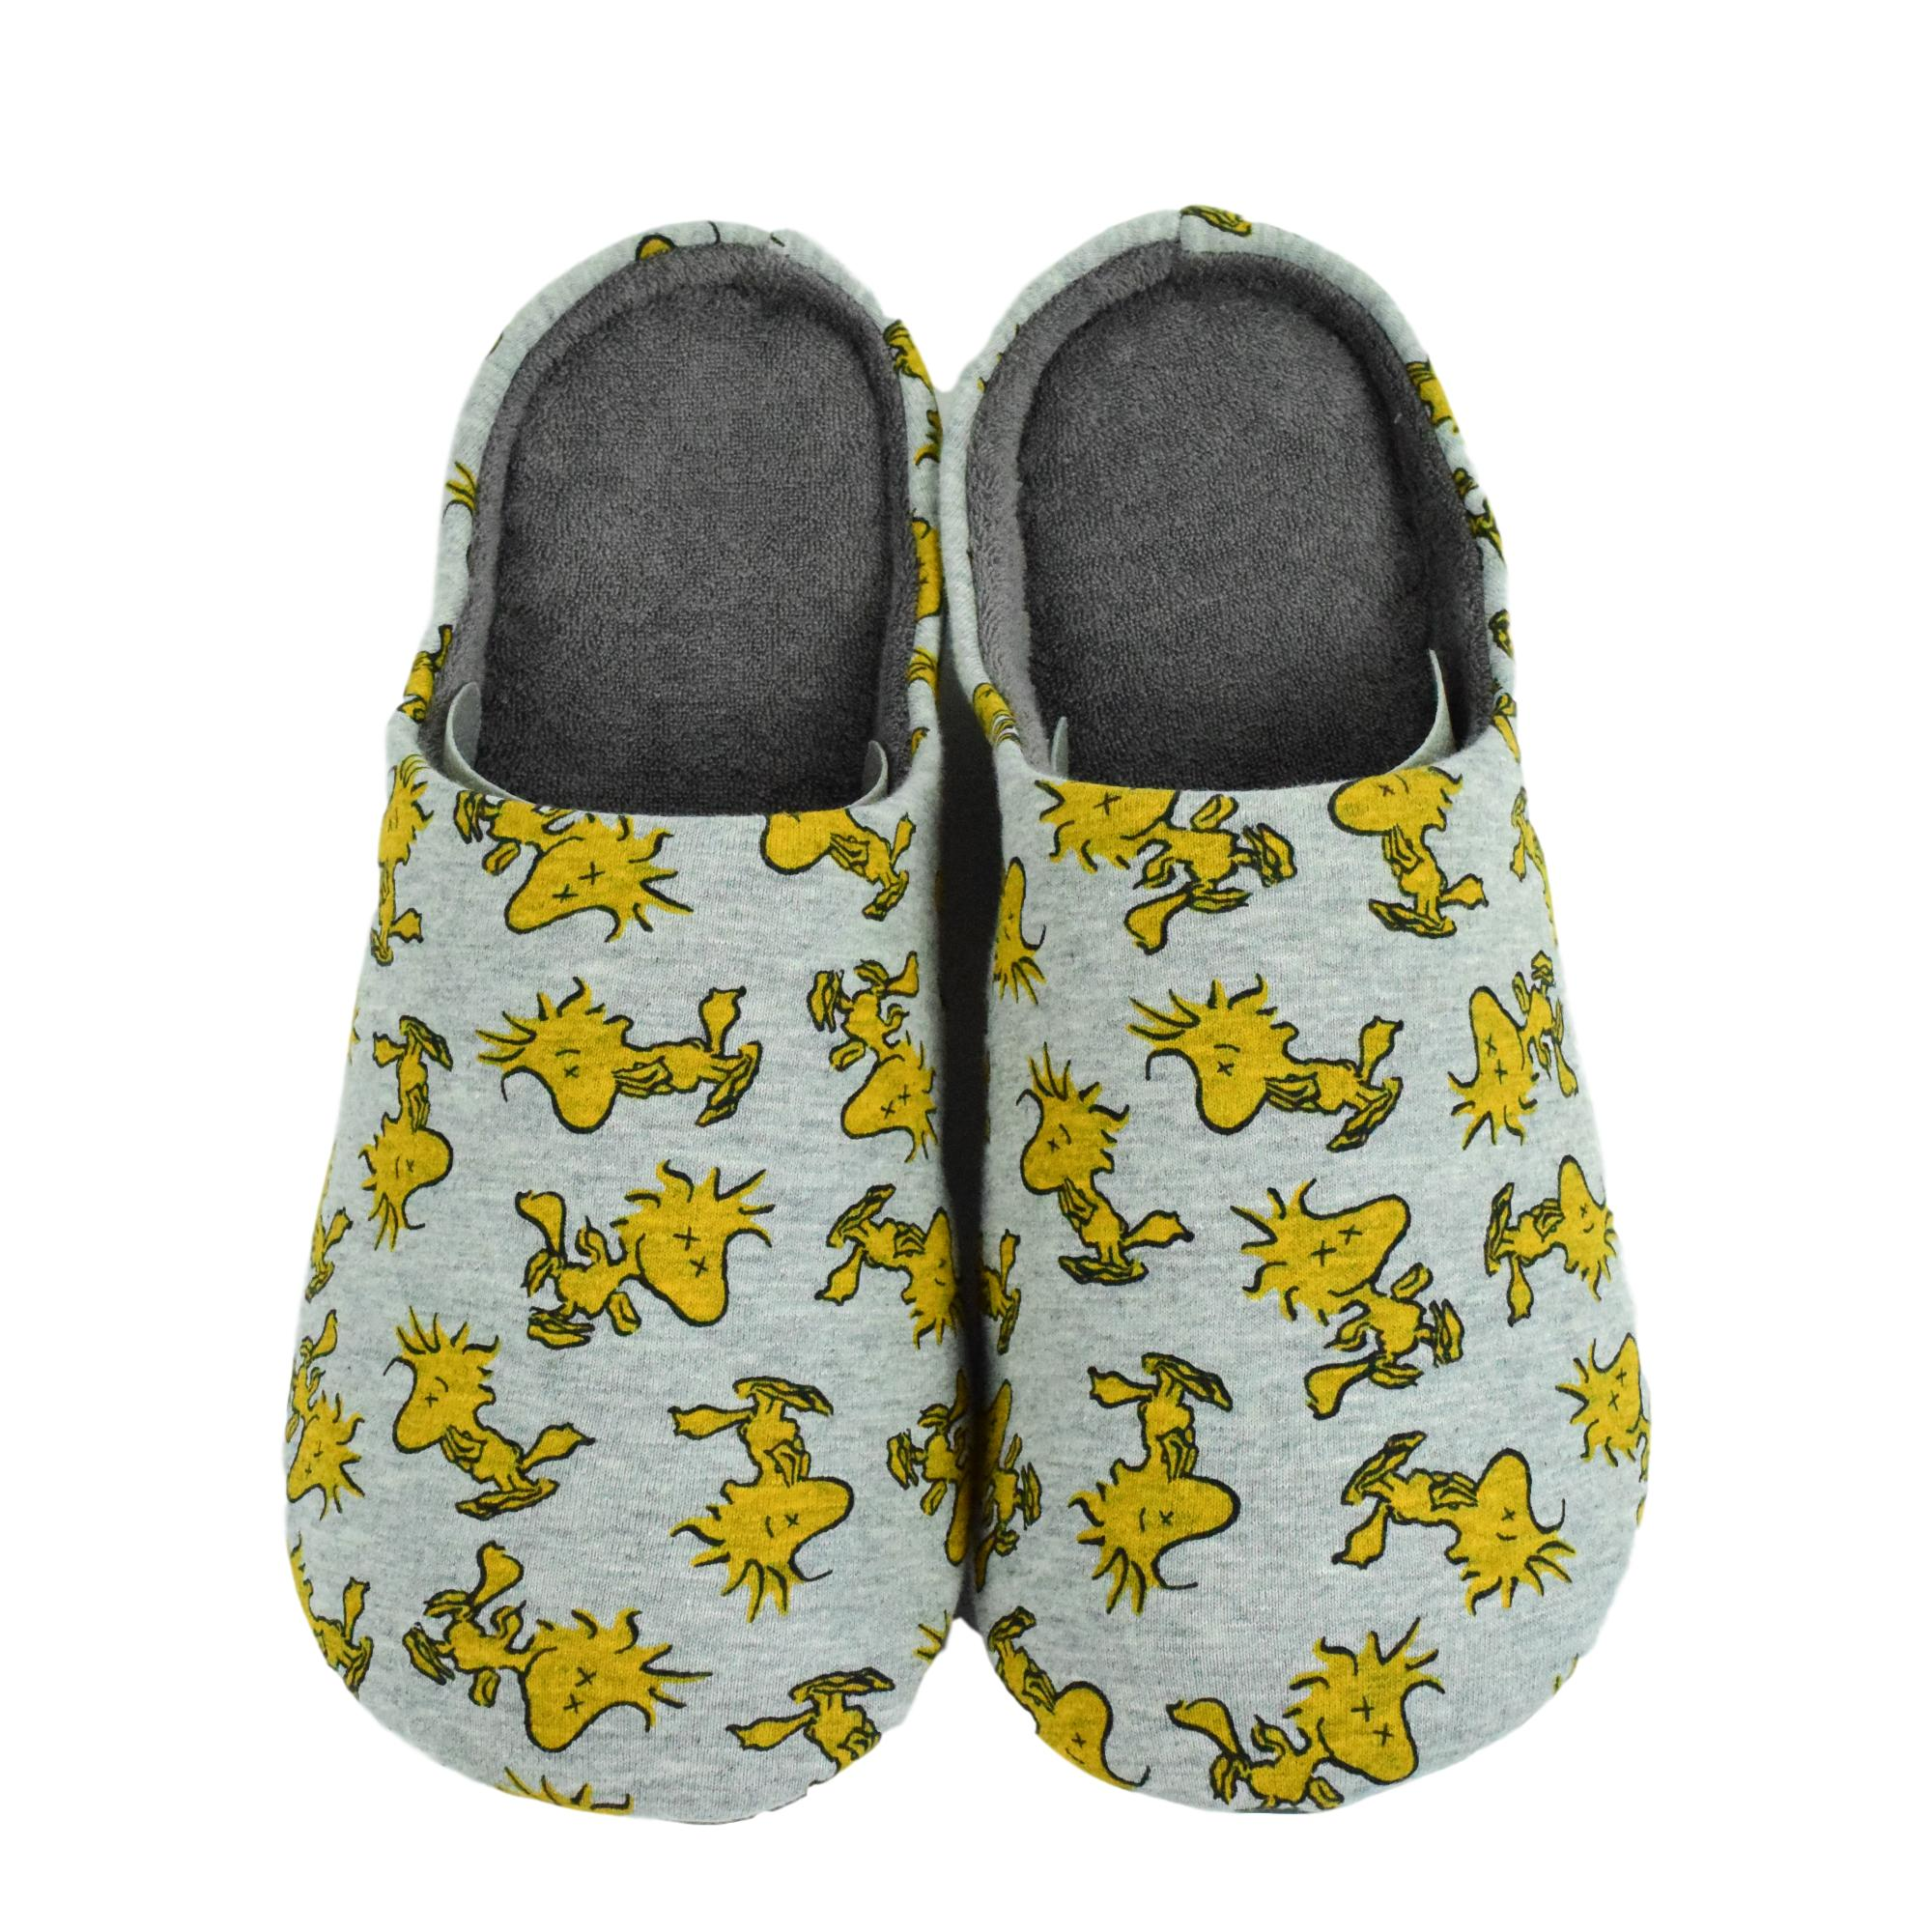 "KAWS X Uniqlo ""Woodstock"" House Shoes"